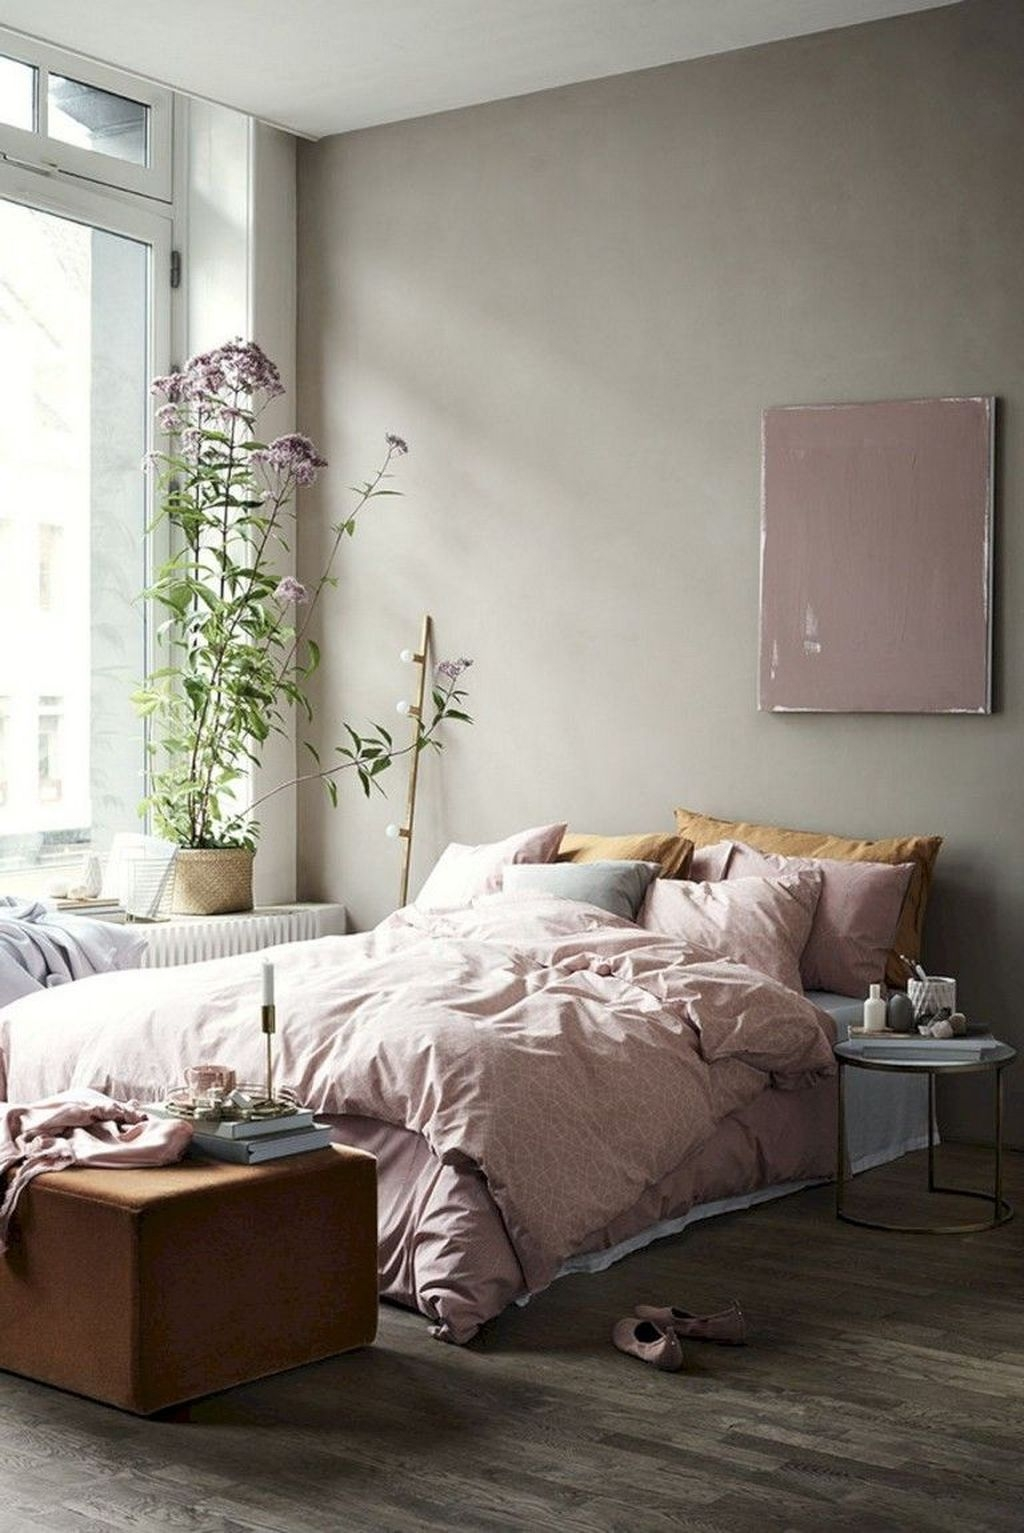 Minimalist Scandinavian Bedroom Decor Ideas 22